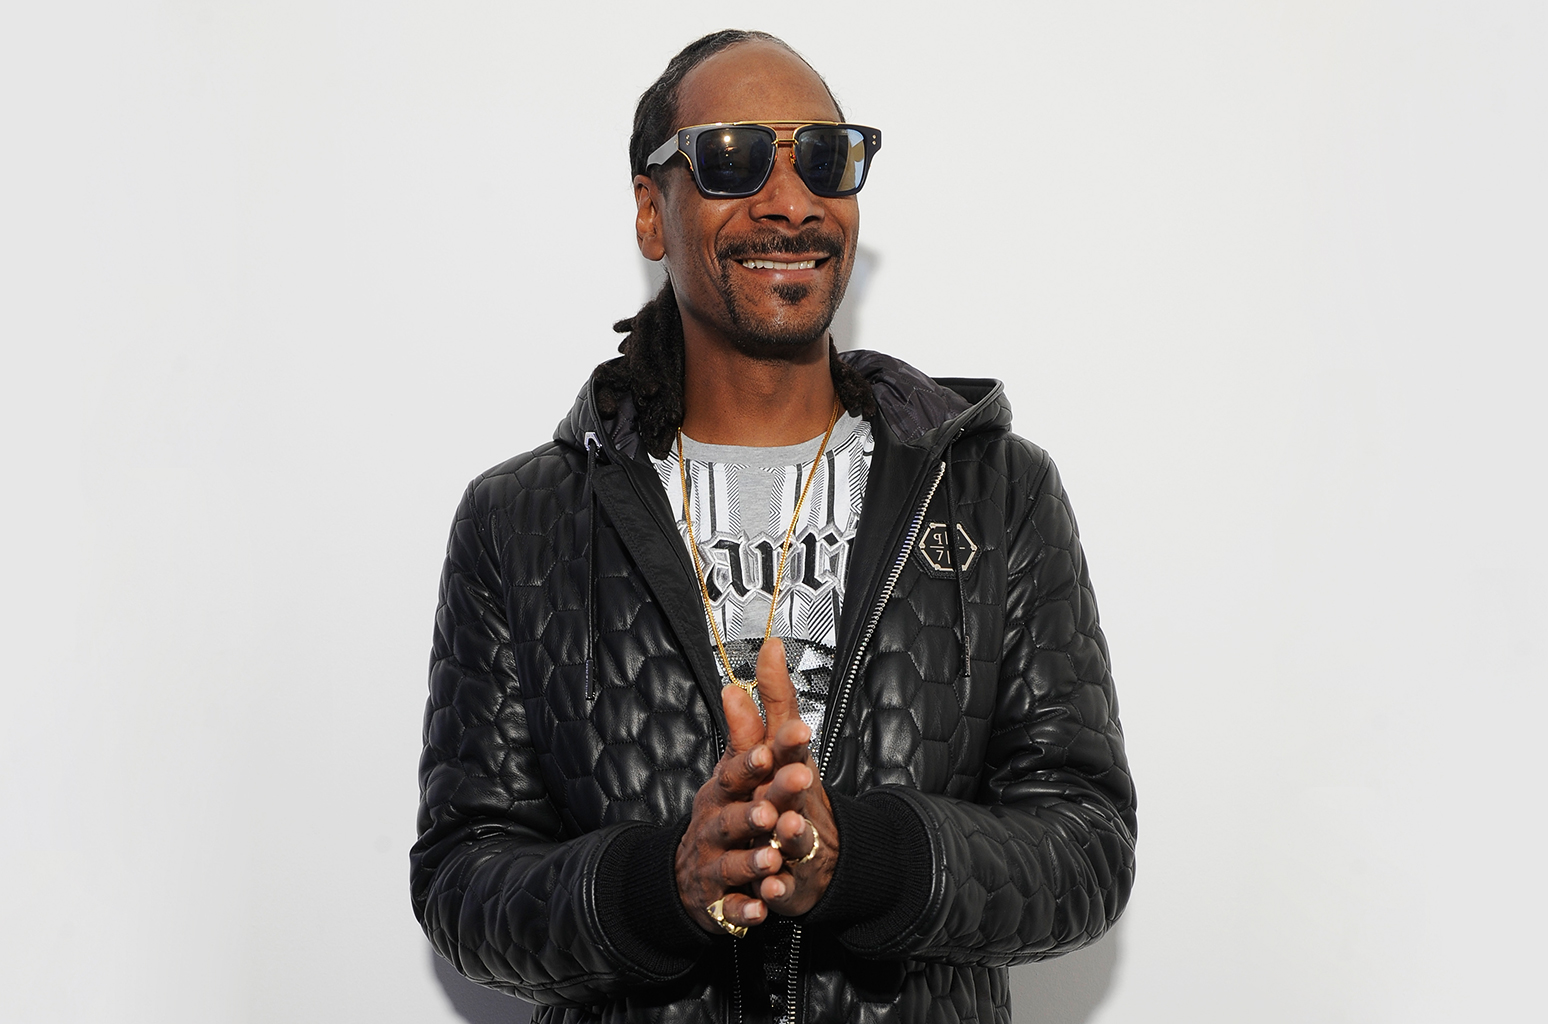 Snoop Dogg Wallpapers High Quality | Download Free